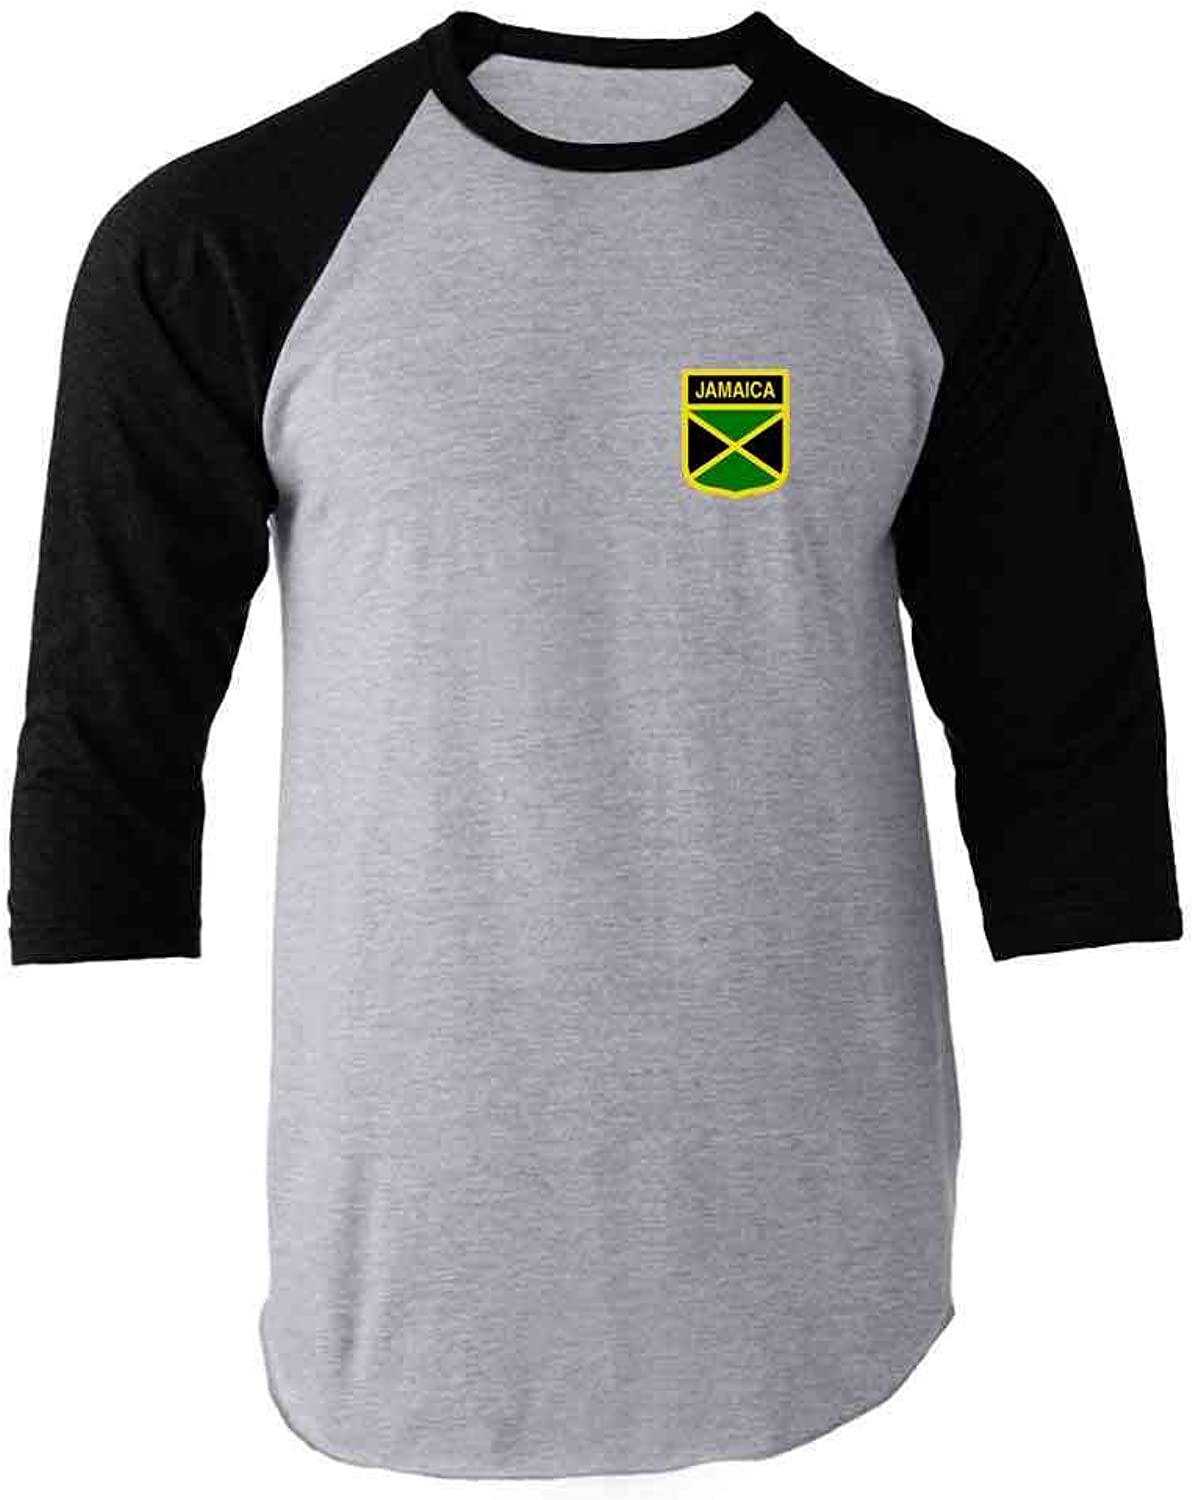 Jamaica Soccer Retro National Team Raglan Baseball Tee Shirt